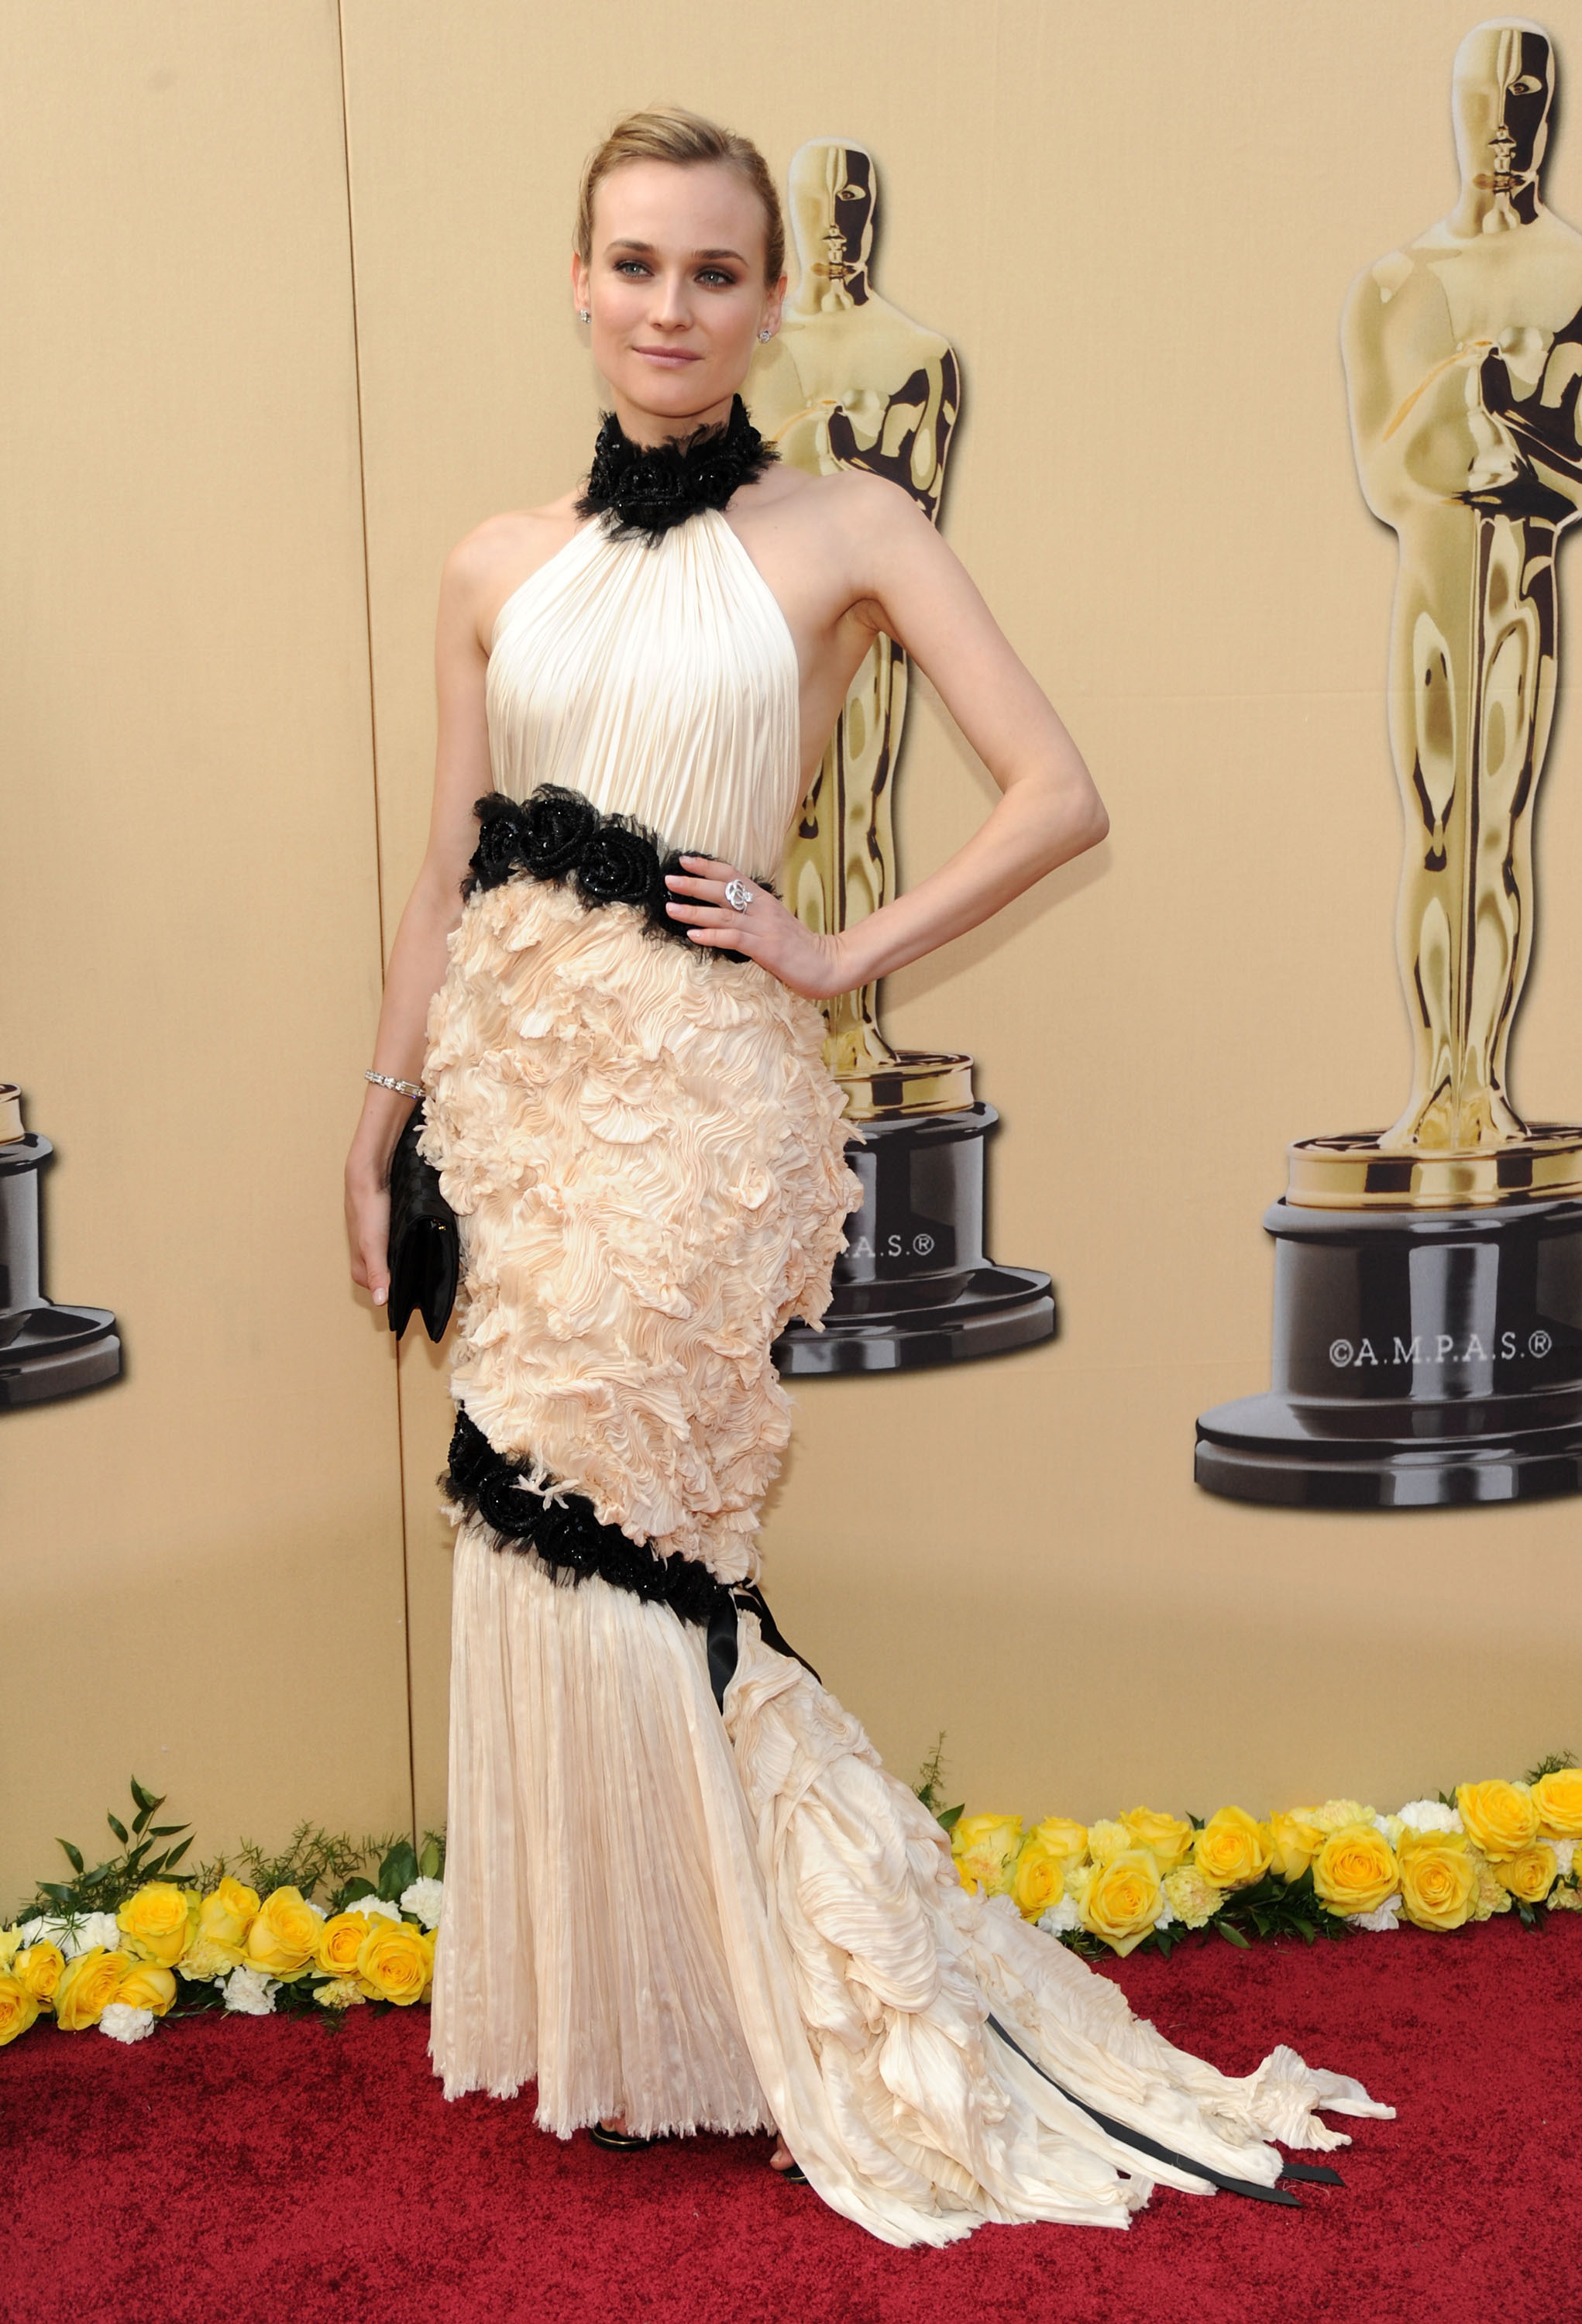 Diane Kruger arrives at the 82nd Annual Academy Awards at the Kodak Theatre in Hollywood on March 7, 2010.